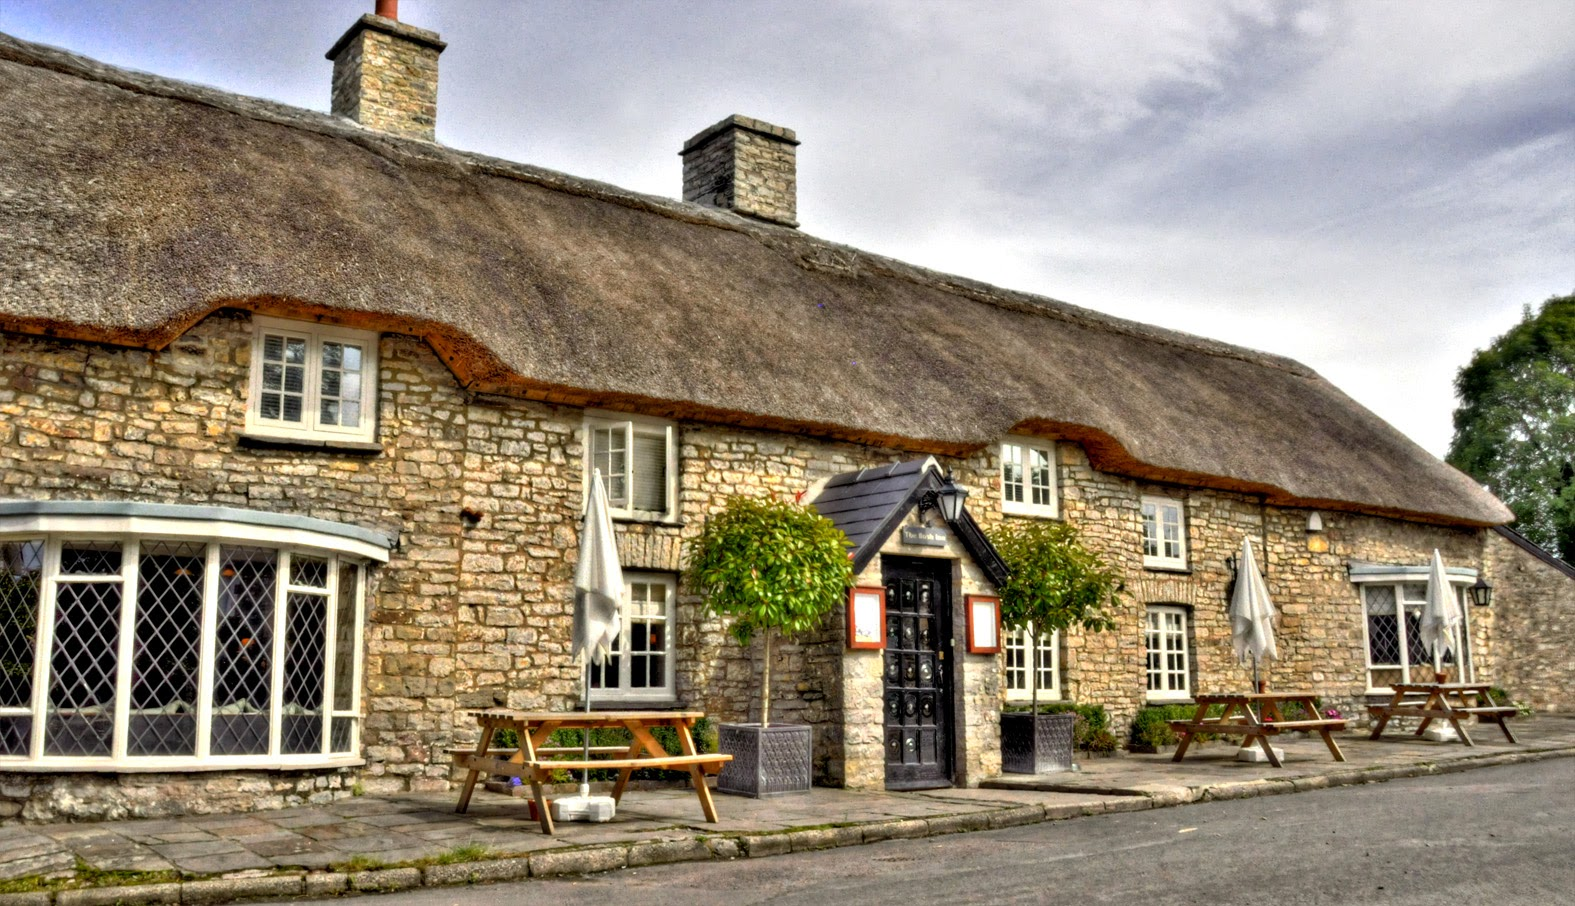 Welsh country inns, The Bush Inn, St. Hilary